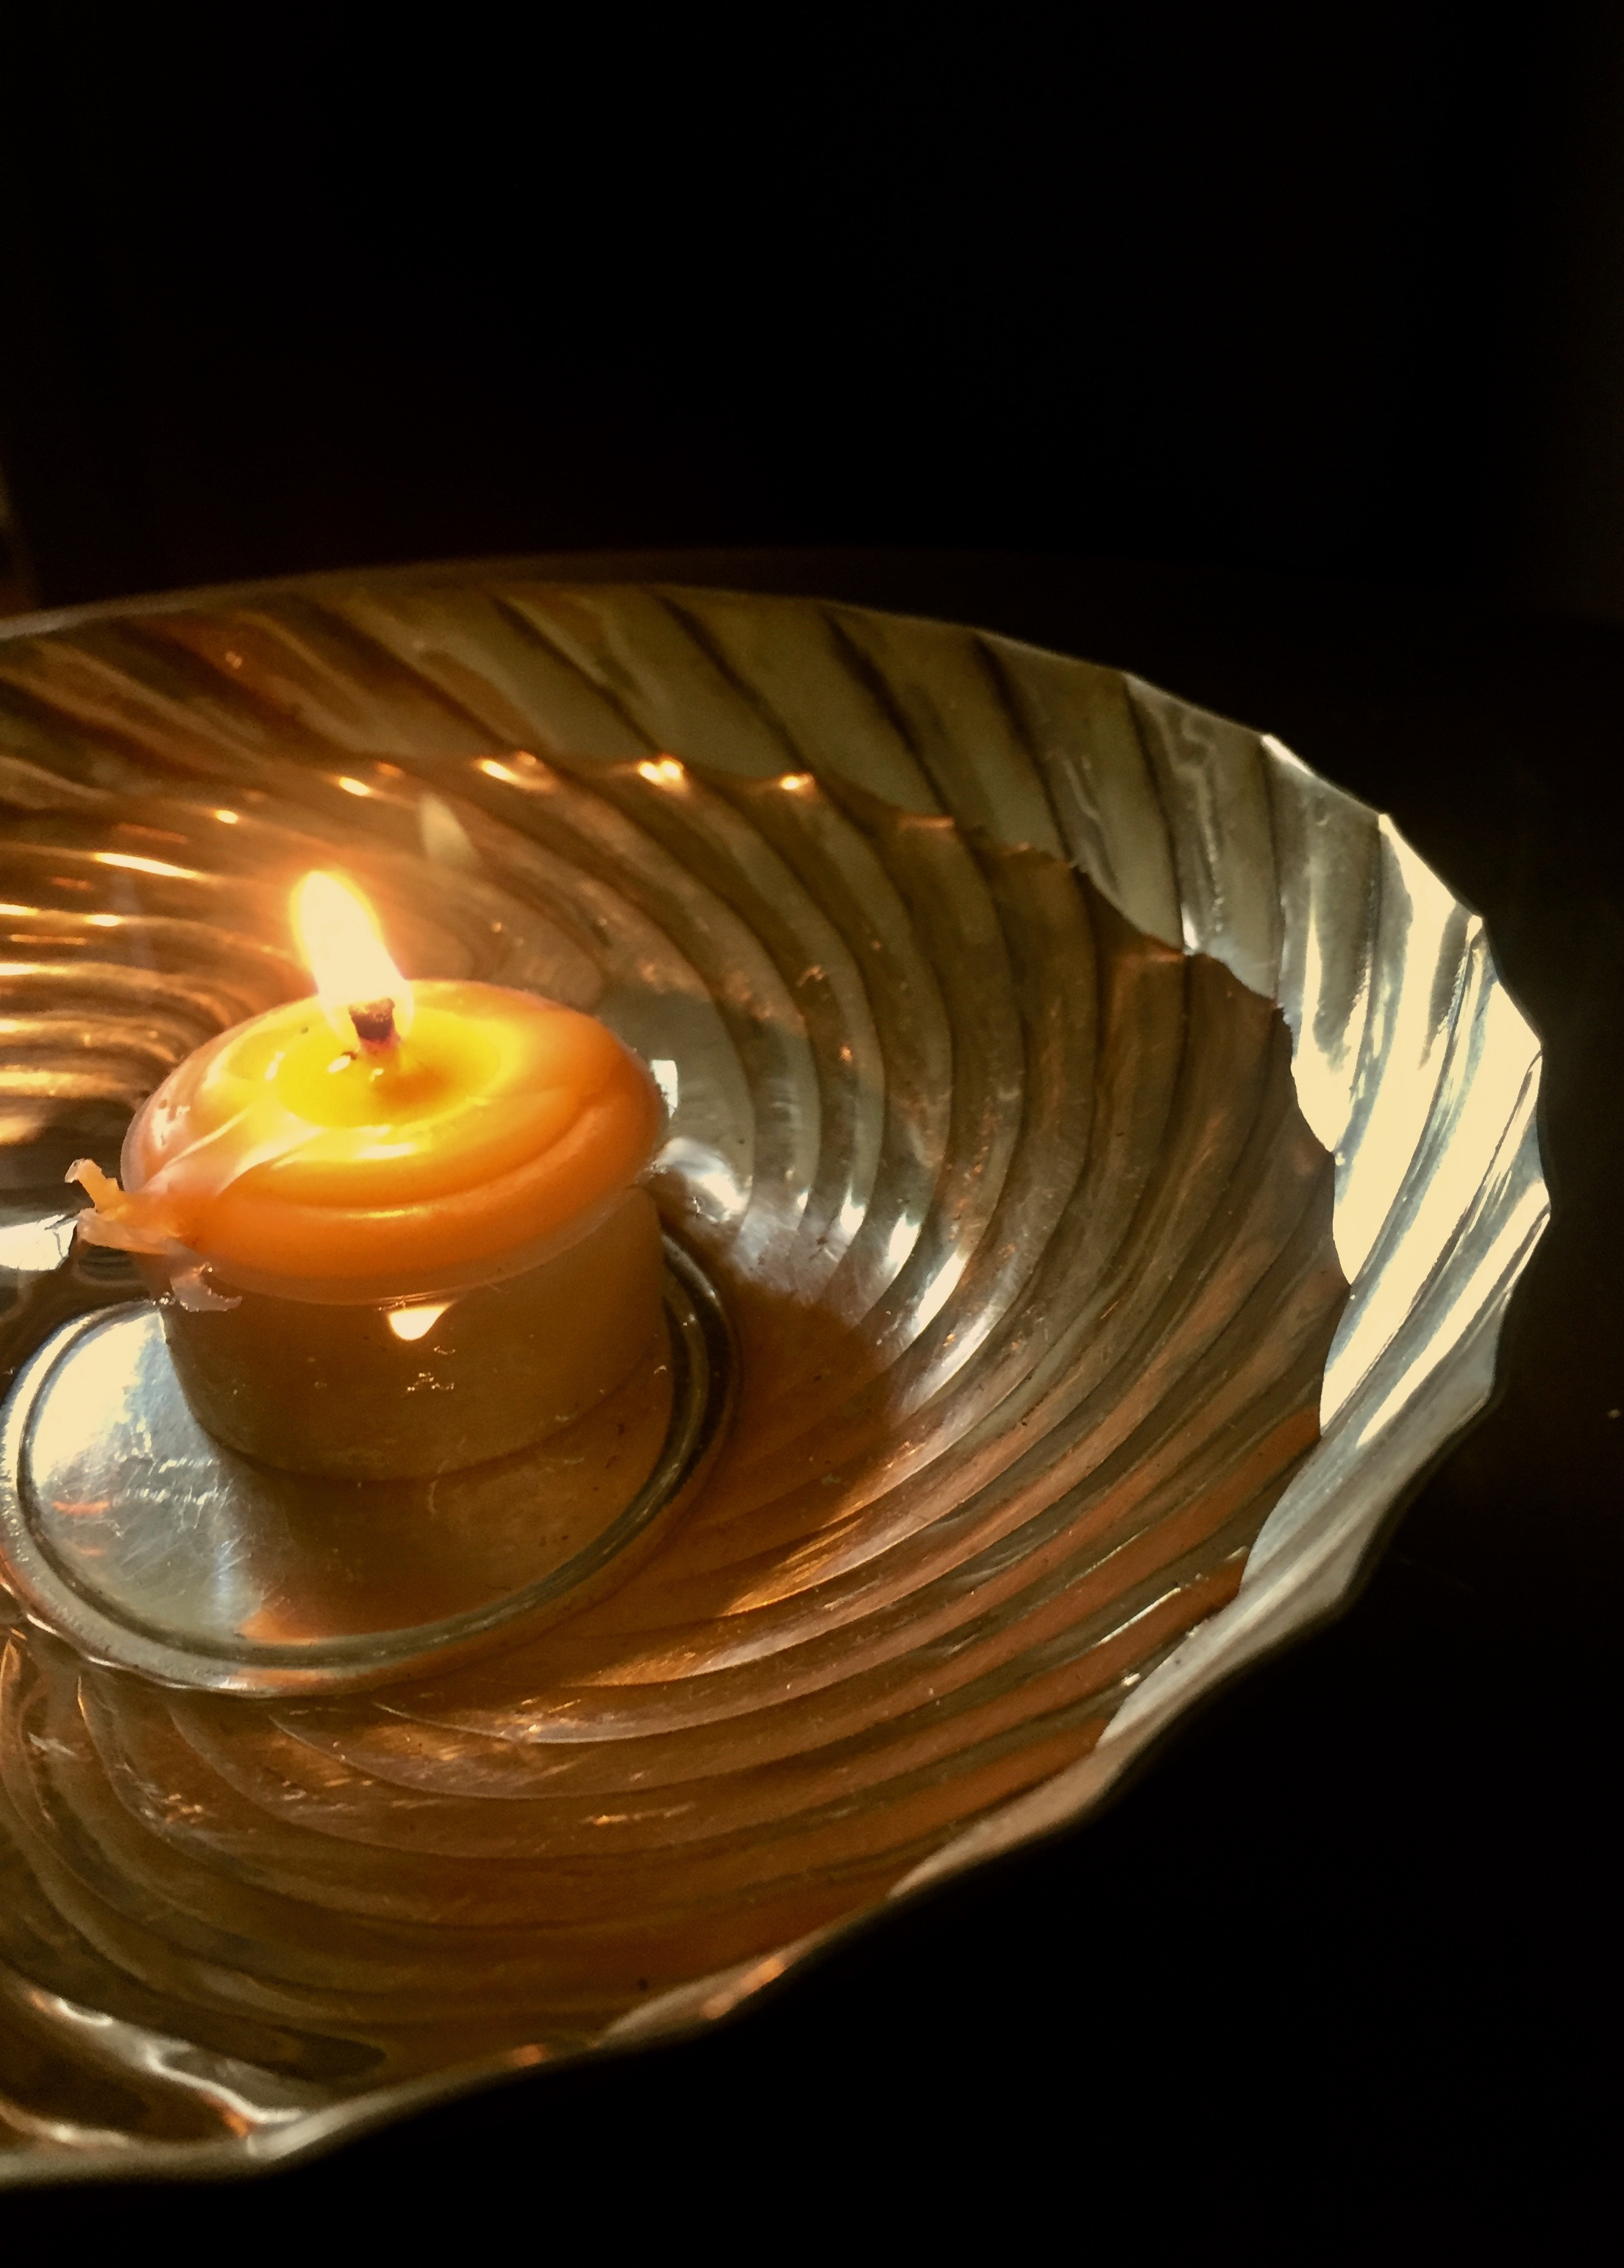 Candle in bowl